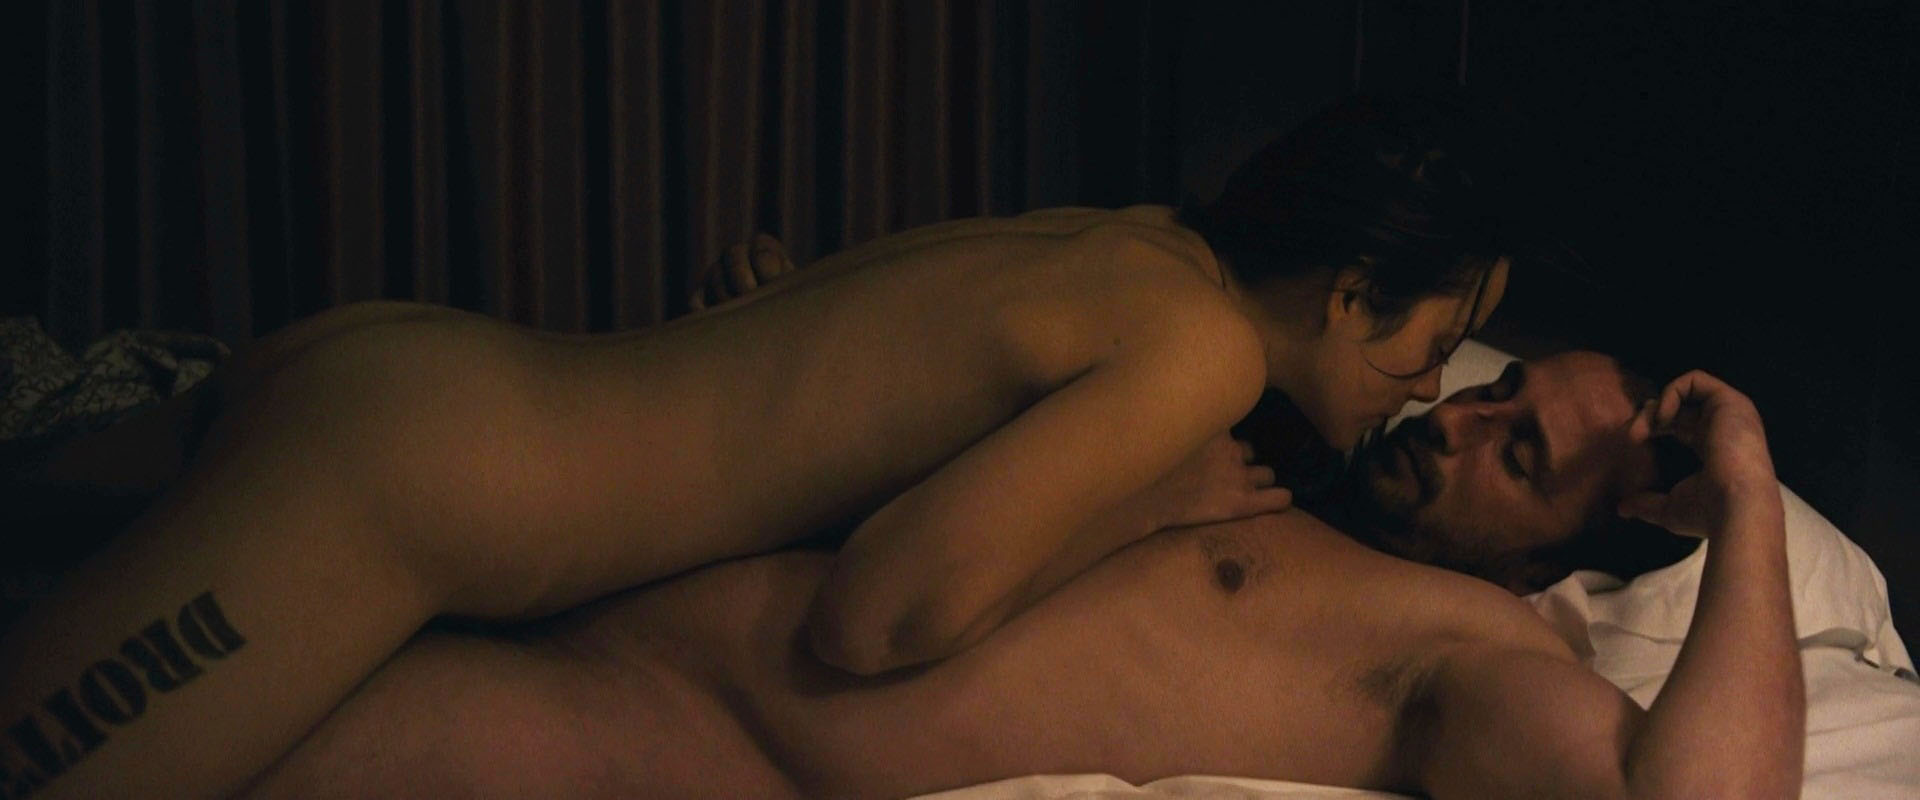 Marion Cotillard – Rust and Bone (2012) HD 1080p